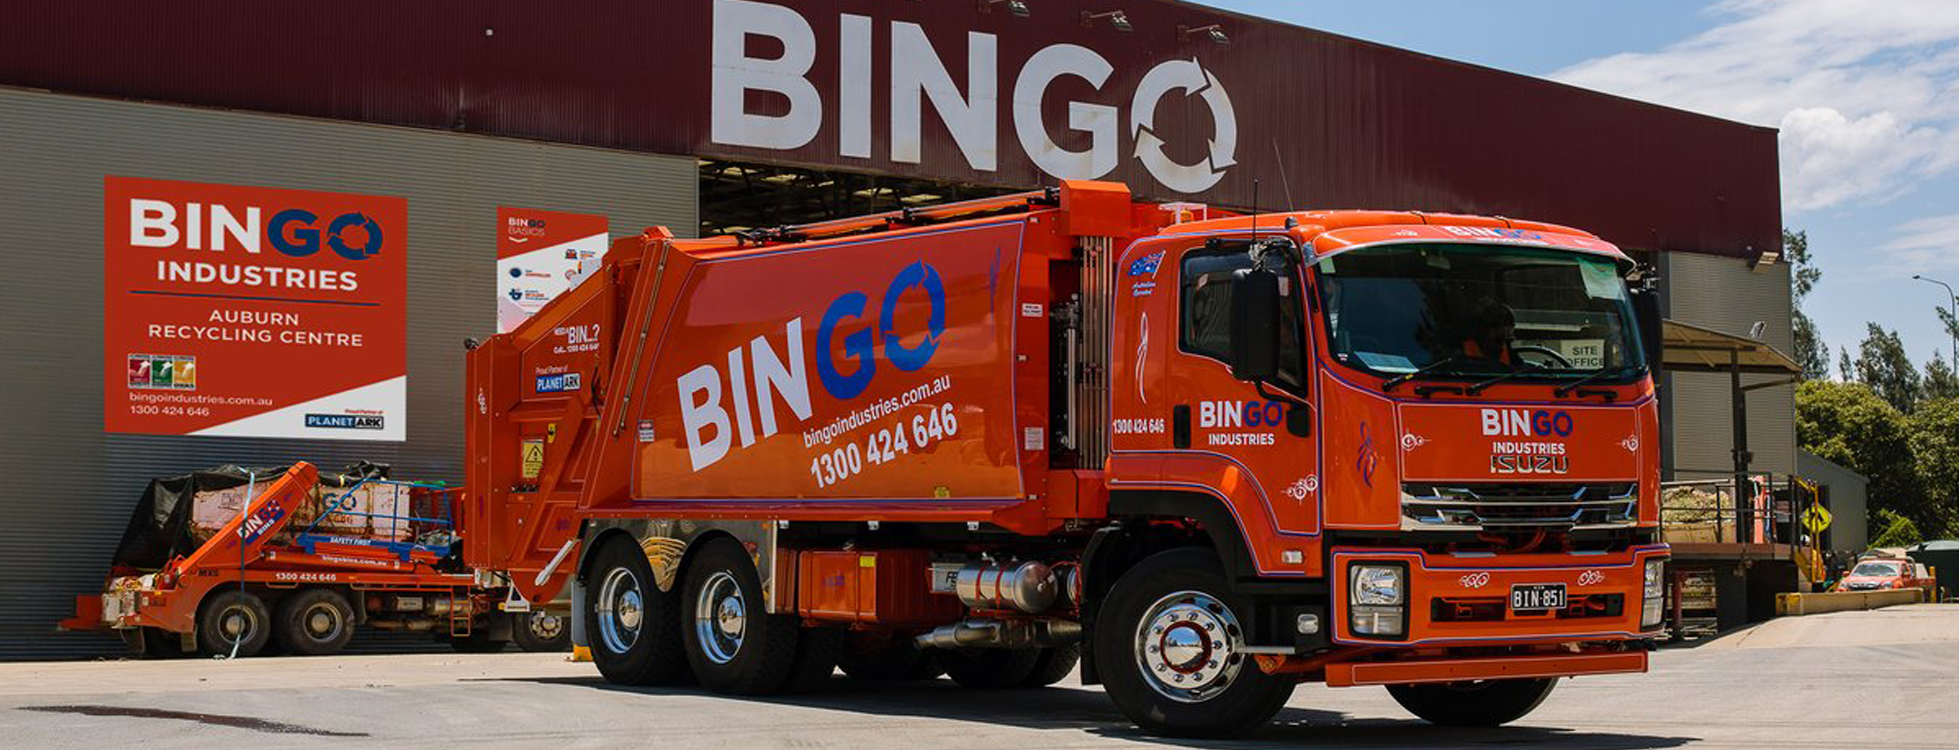 Customer Story: BINGO Industries Adopts Best Practices for Mobile Workforce featured image